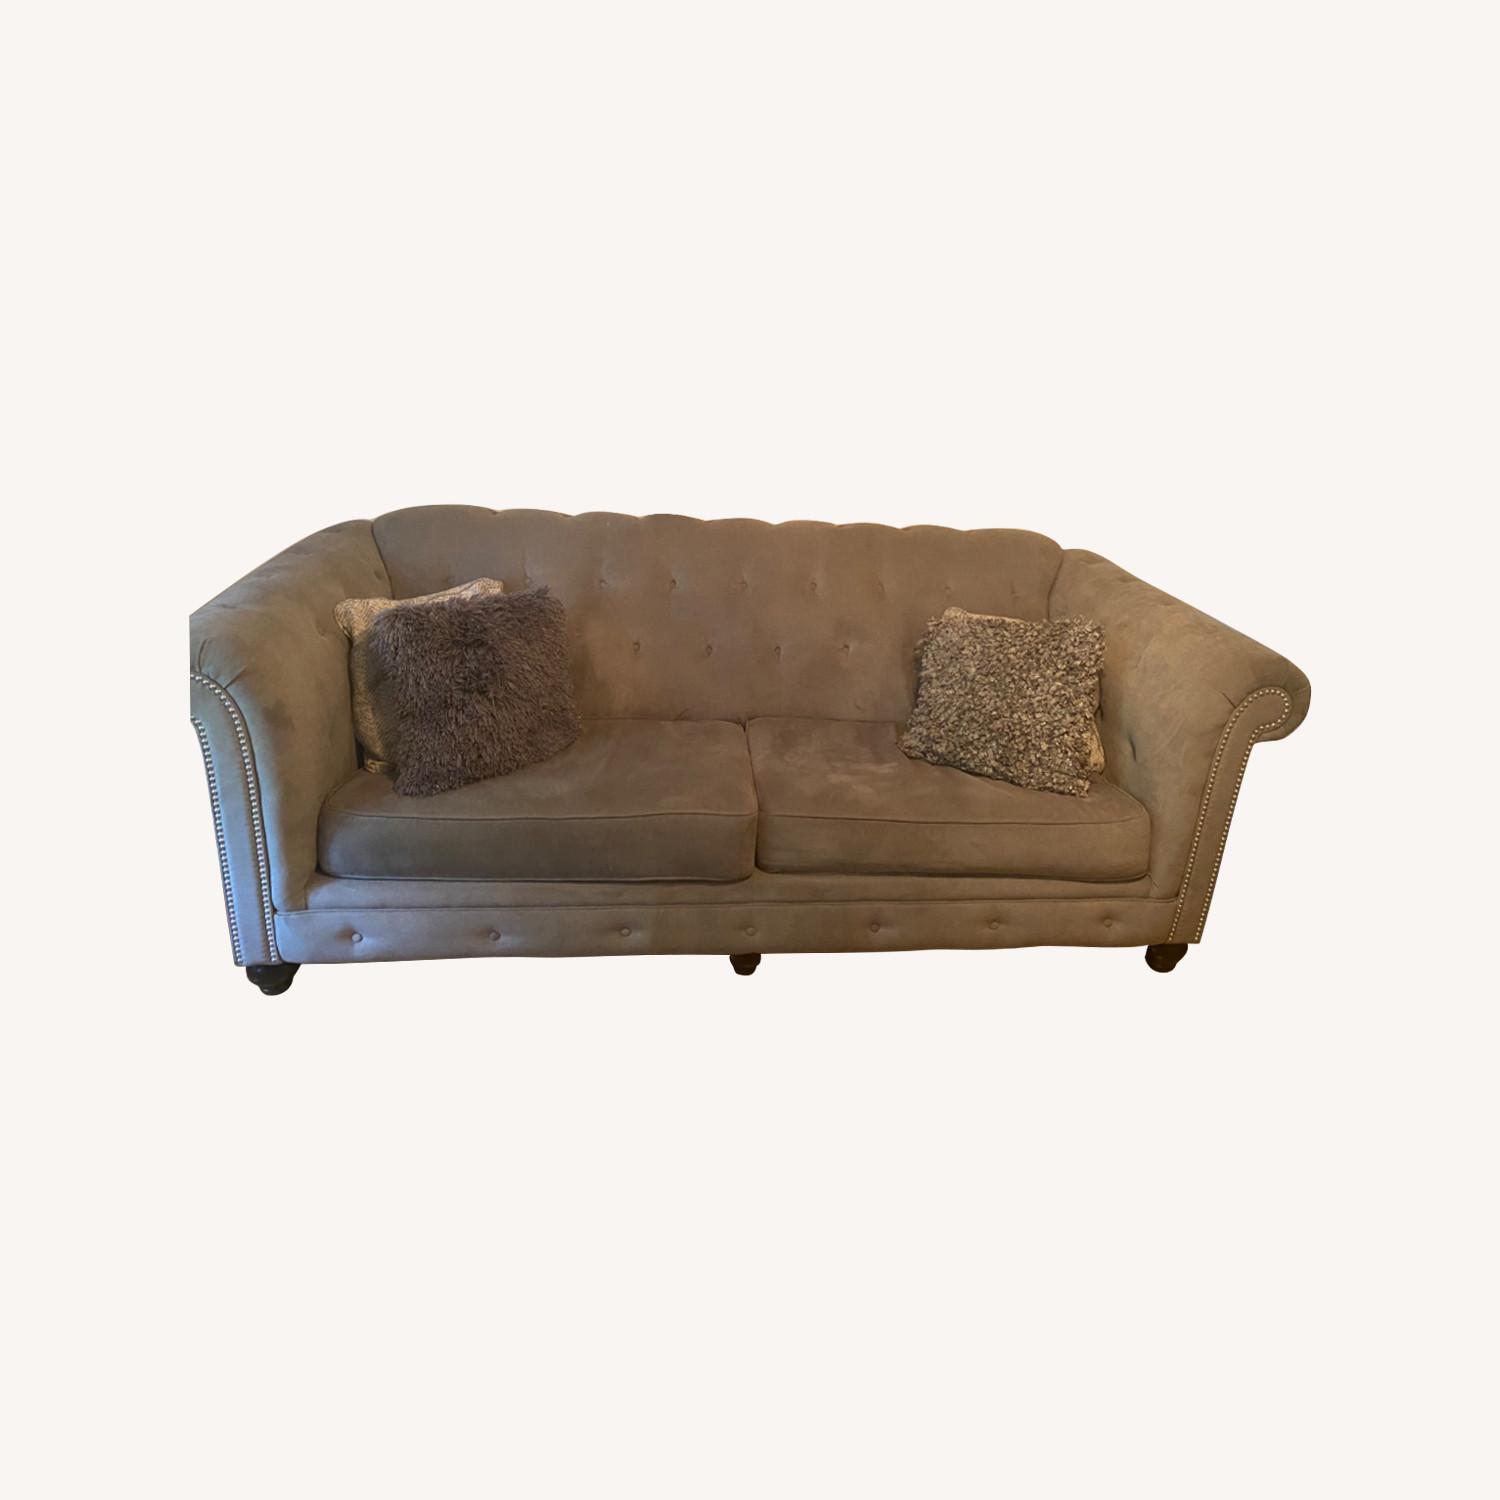 Ashley Furniture Grey Couches - image-0